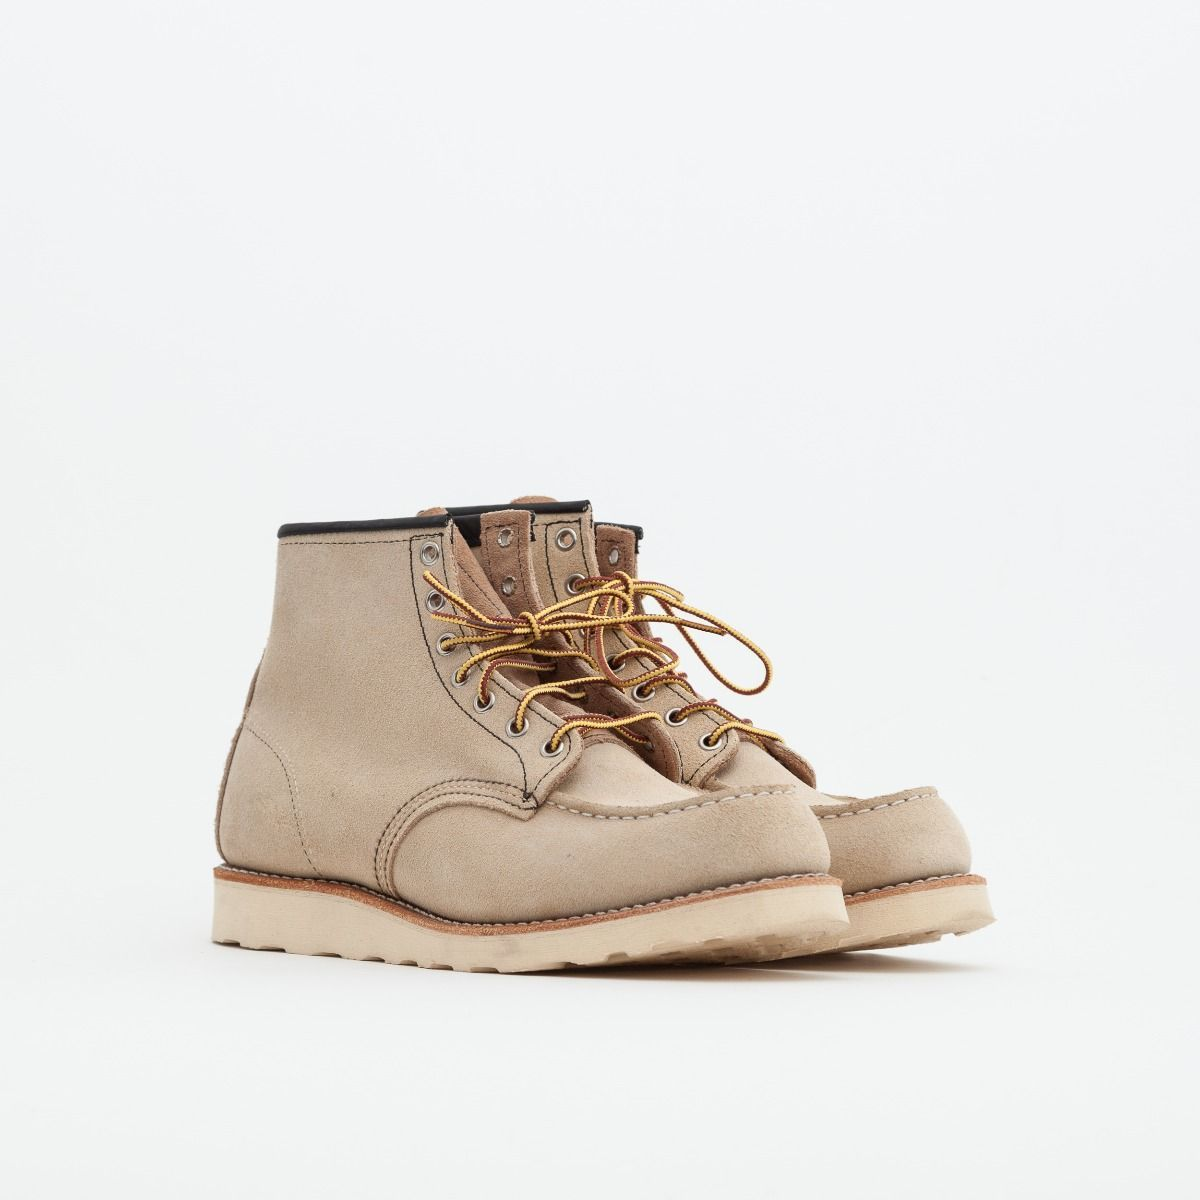 87fb4cb07db Classic Moc 8850 | Footwear | Red wing boots, Goodyear welt, Clean toes